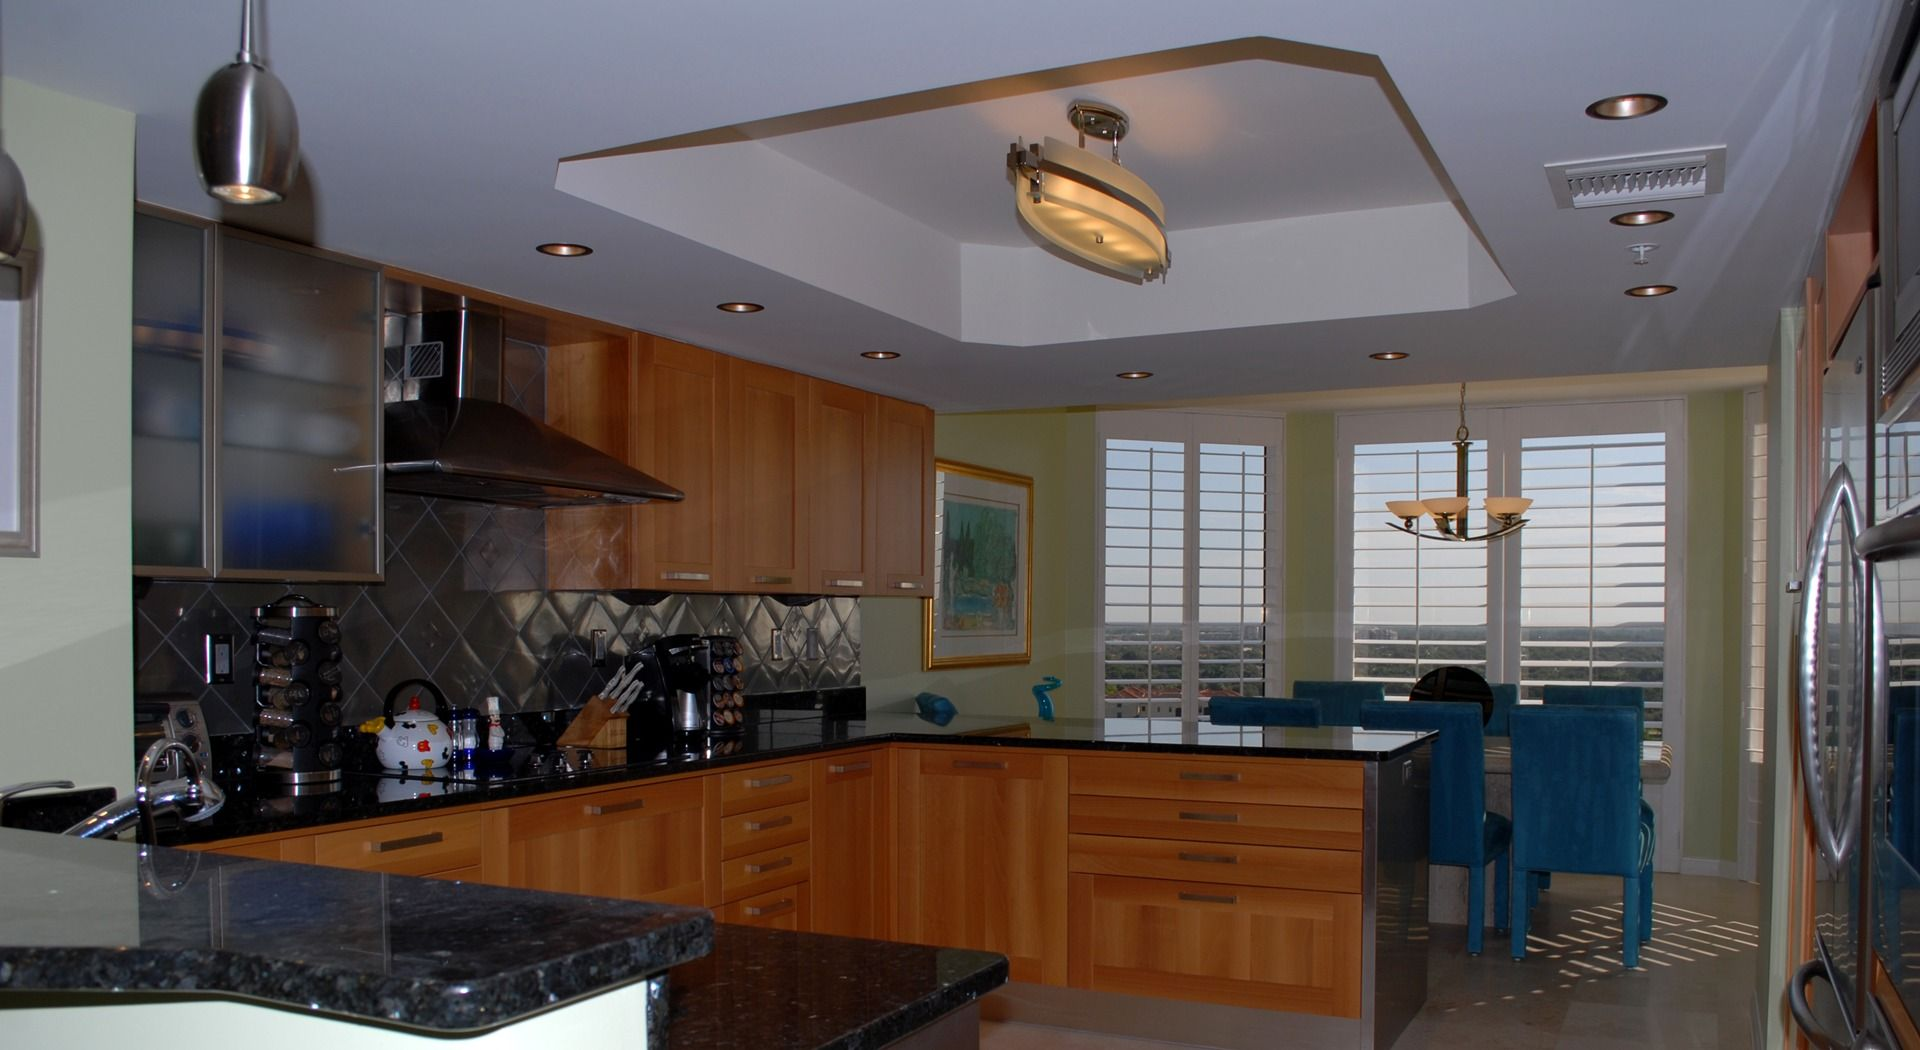 Remodeling Kitchens And Bathrooms Alley Design To Build Naples - Kitchen remodeling naples fl